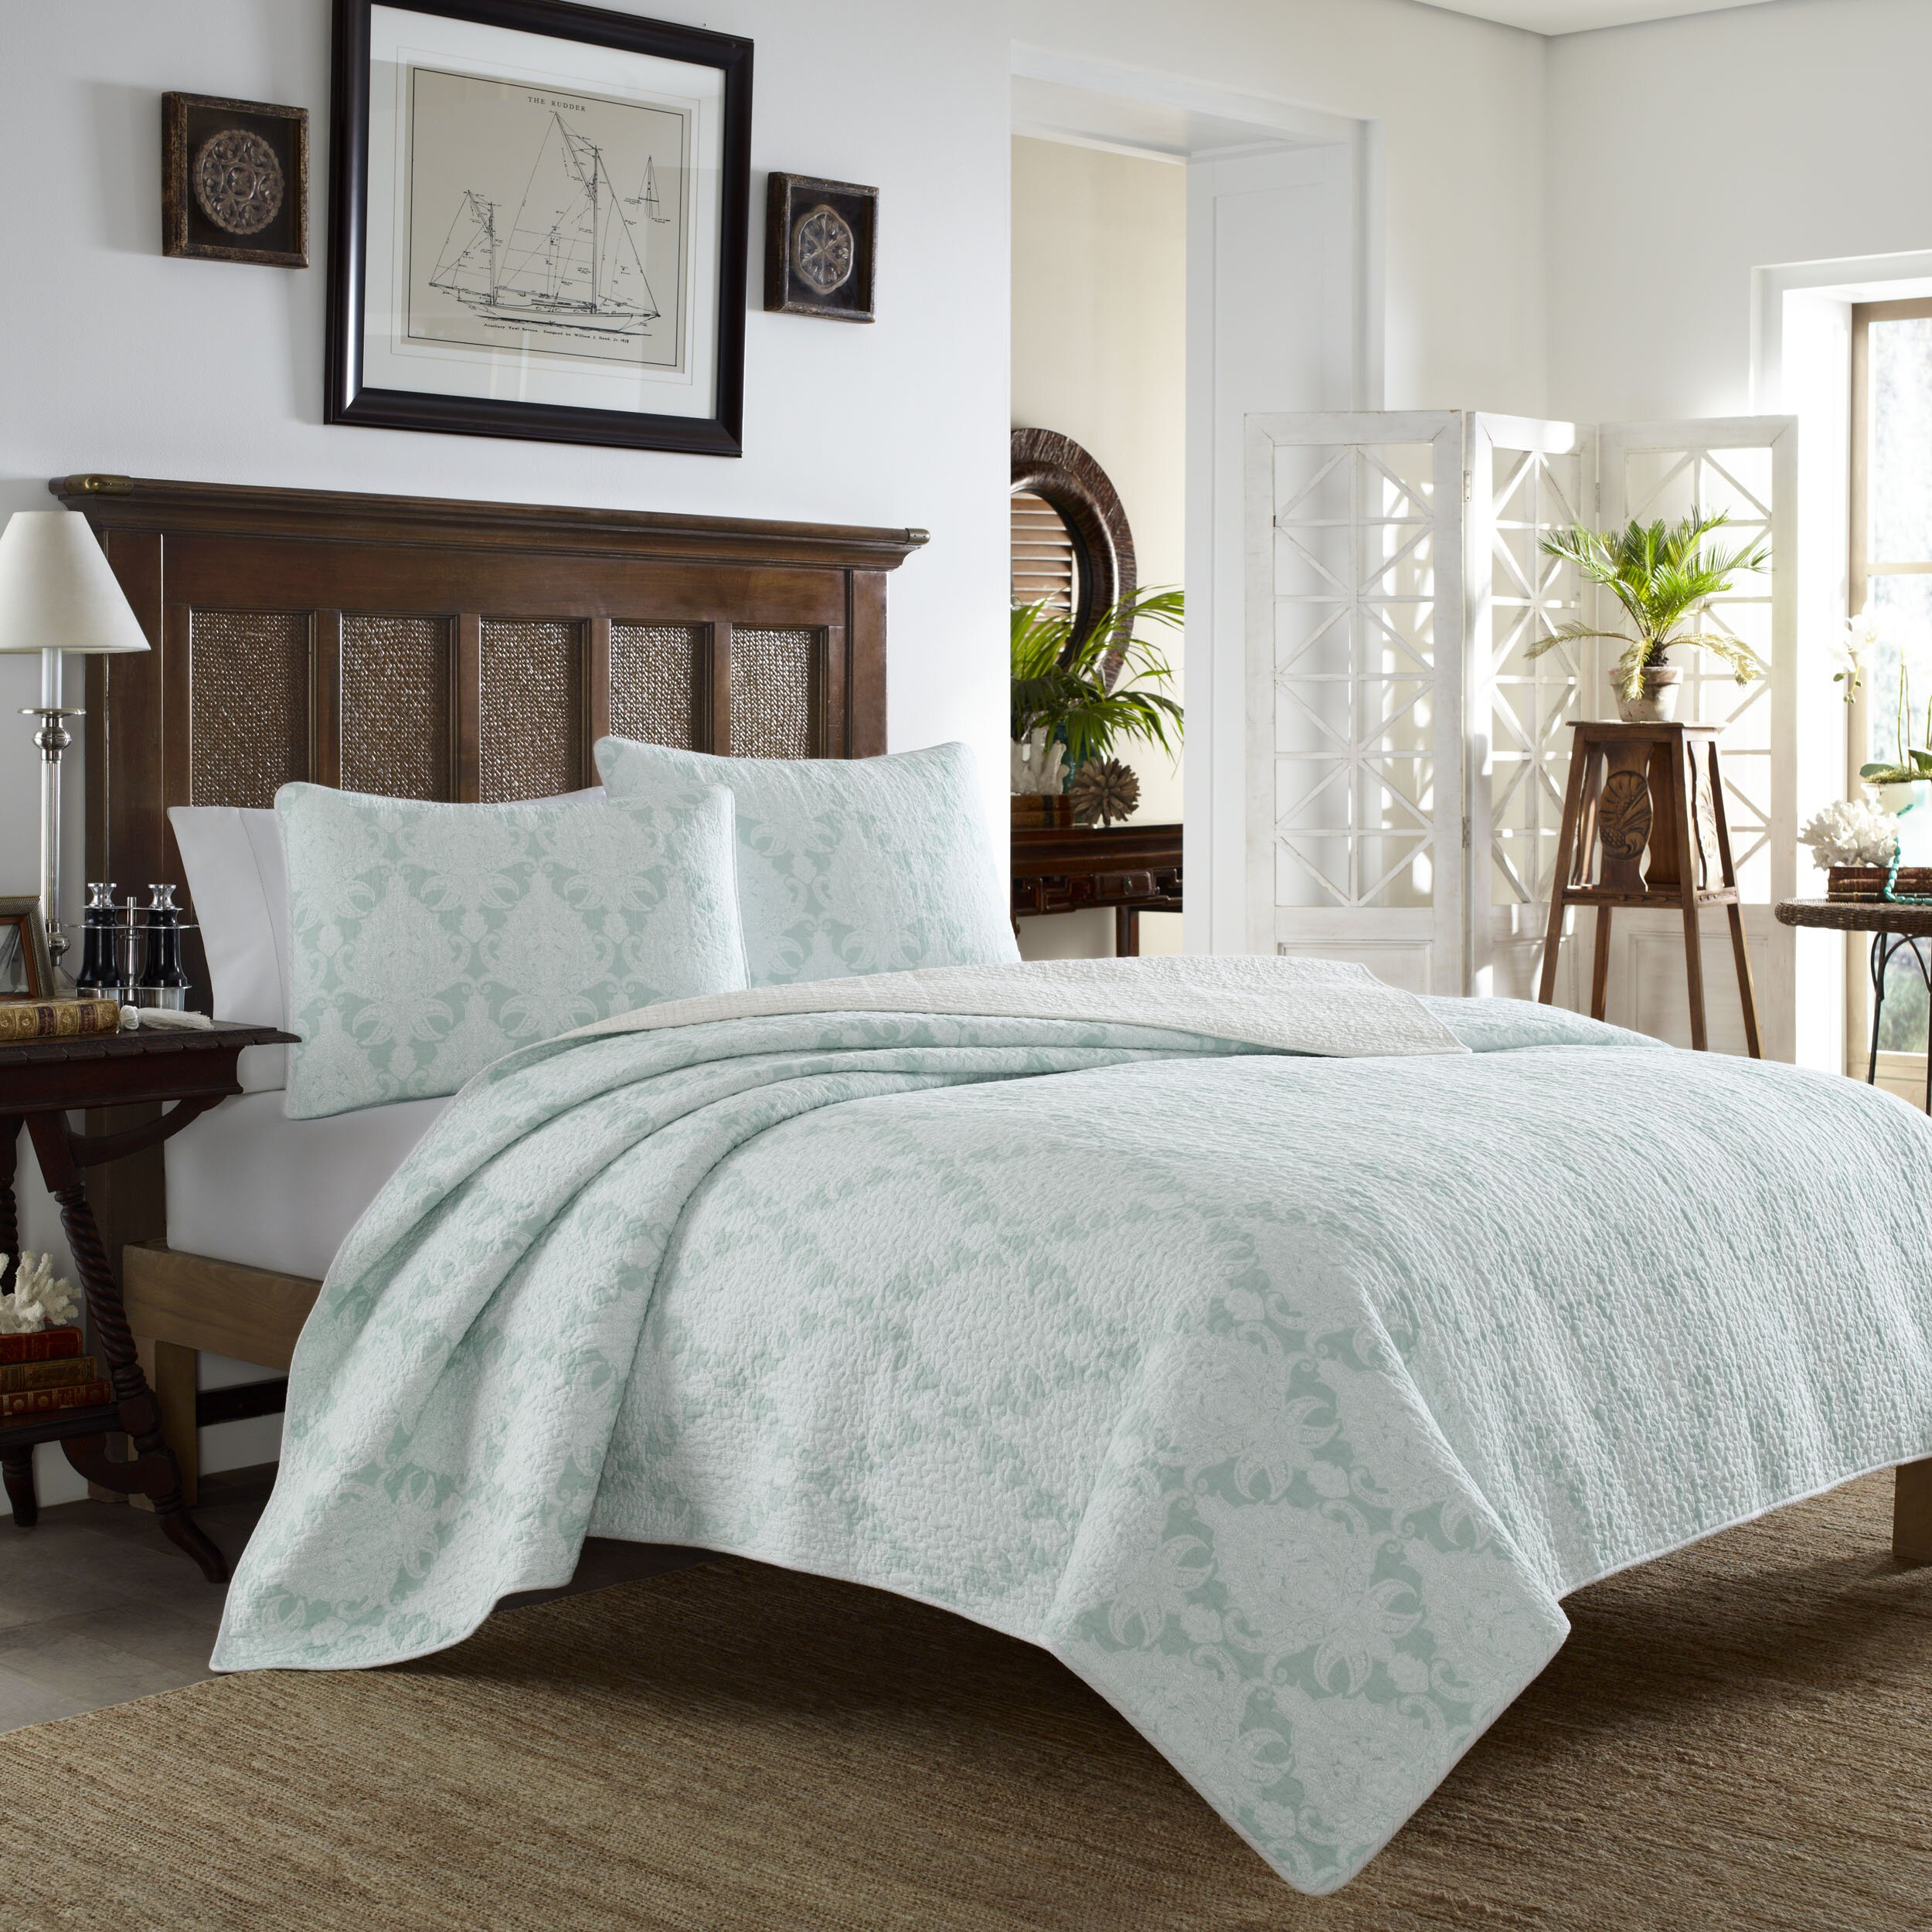 Tommy Bahama Bedding Cape Plumbago Reversible Quilt Set